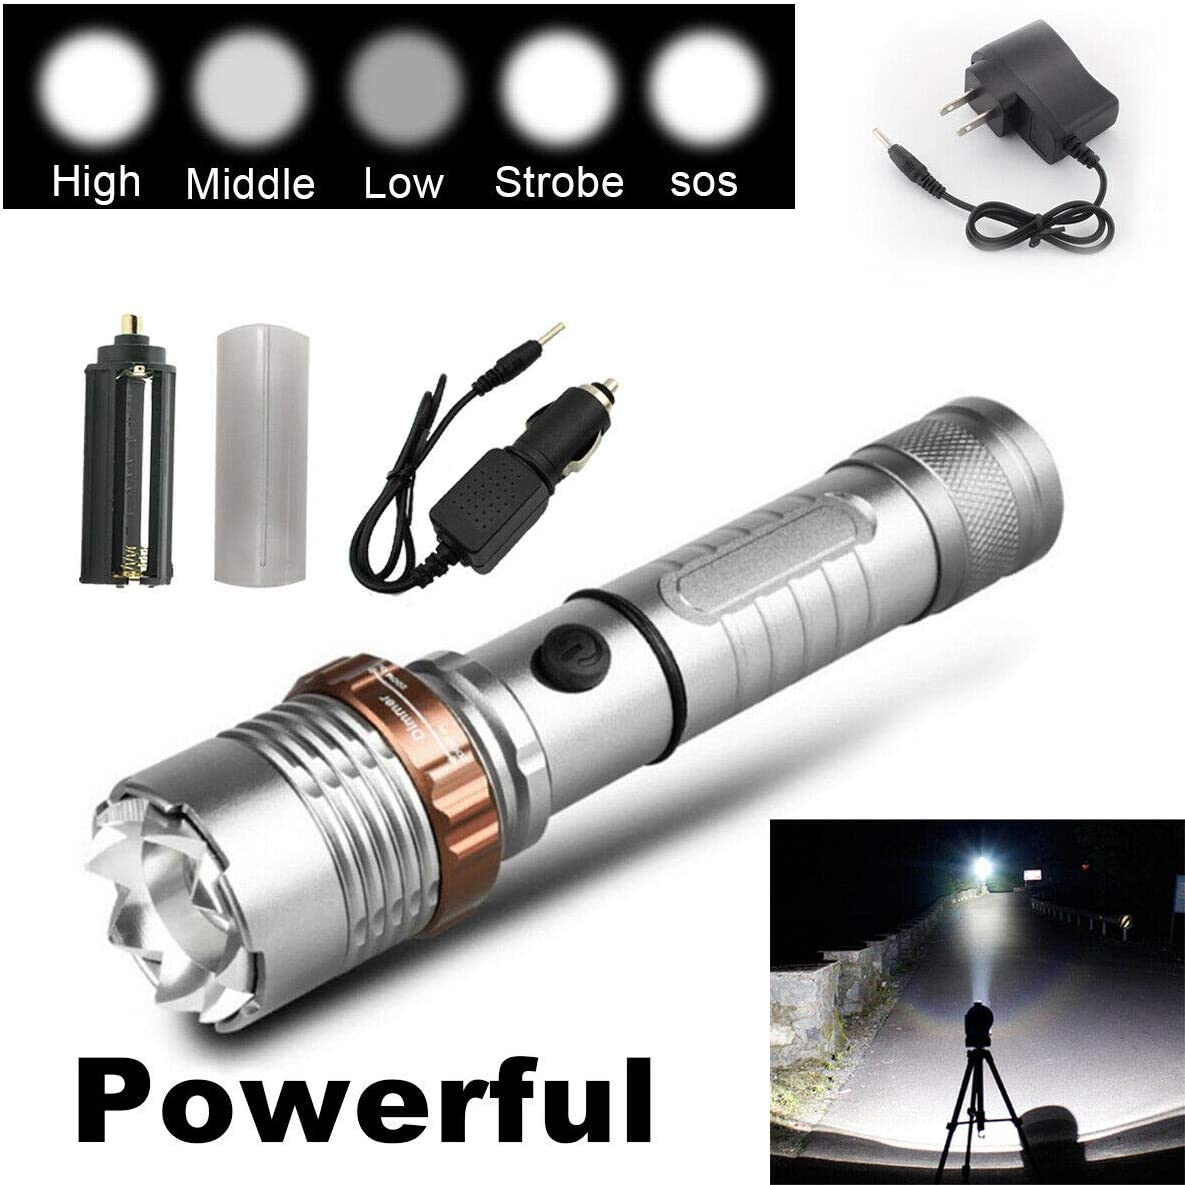 Details about  /Tactical 990000LM Zoomable LED Bright Flashlight Torch Aluminum Hand Lamp